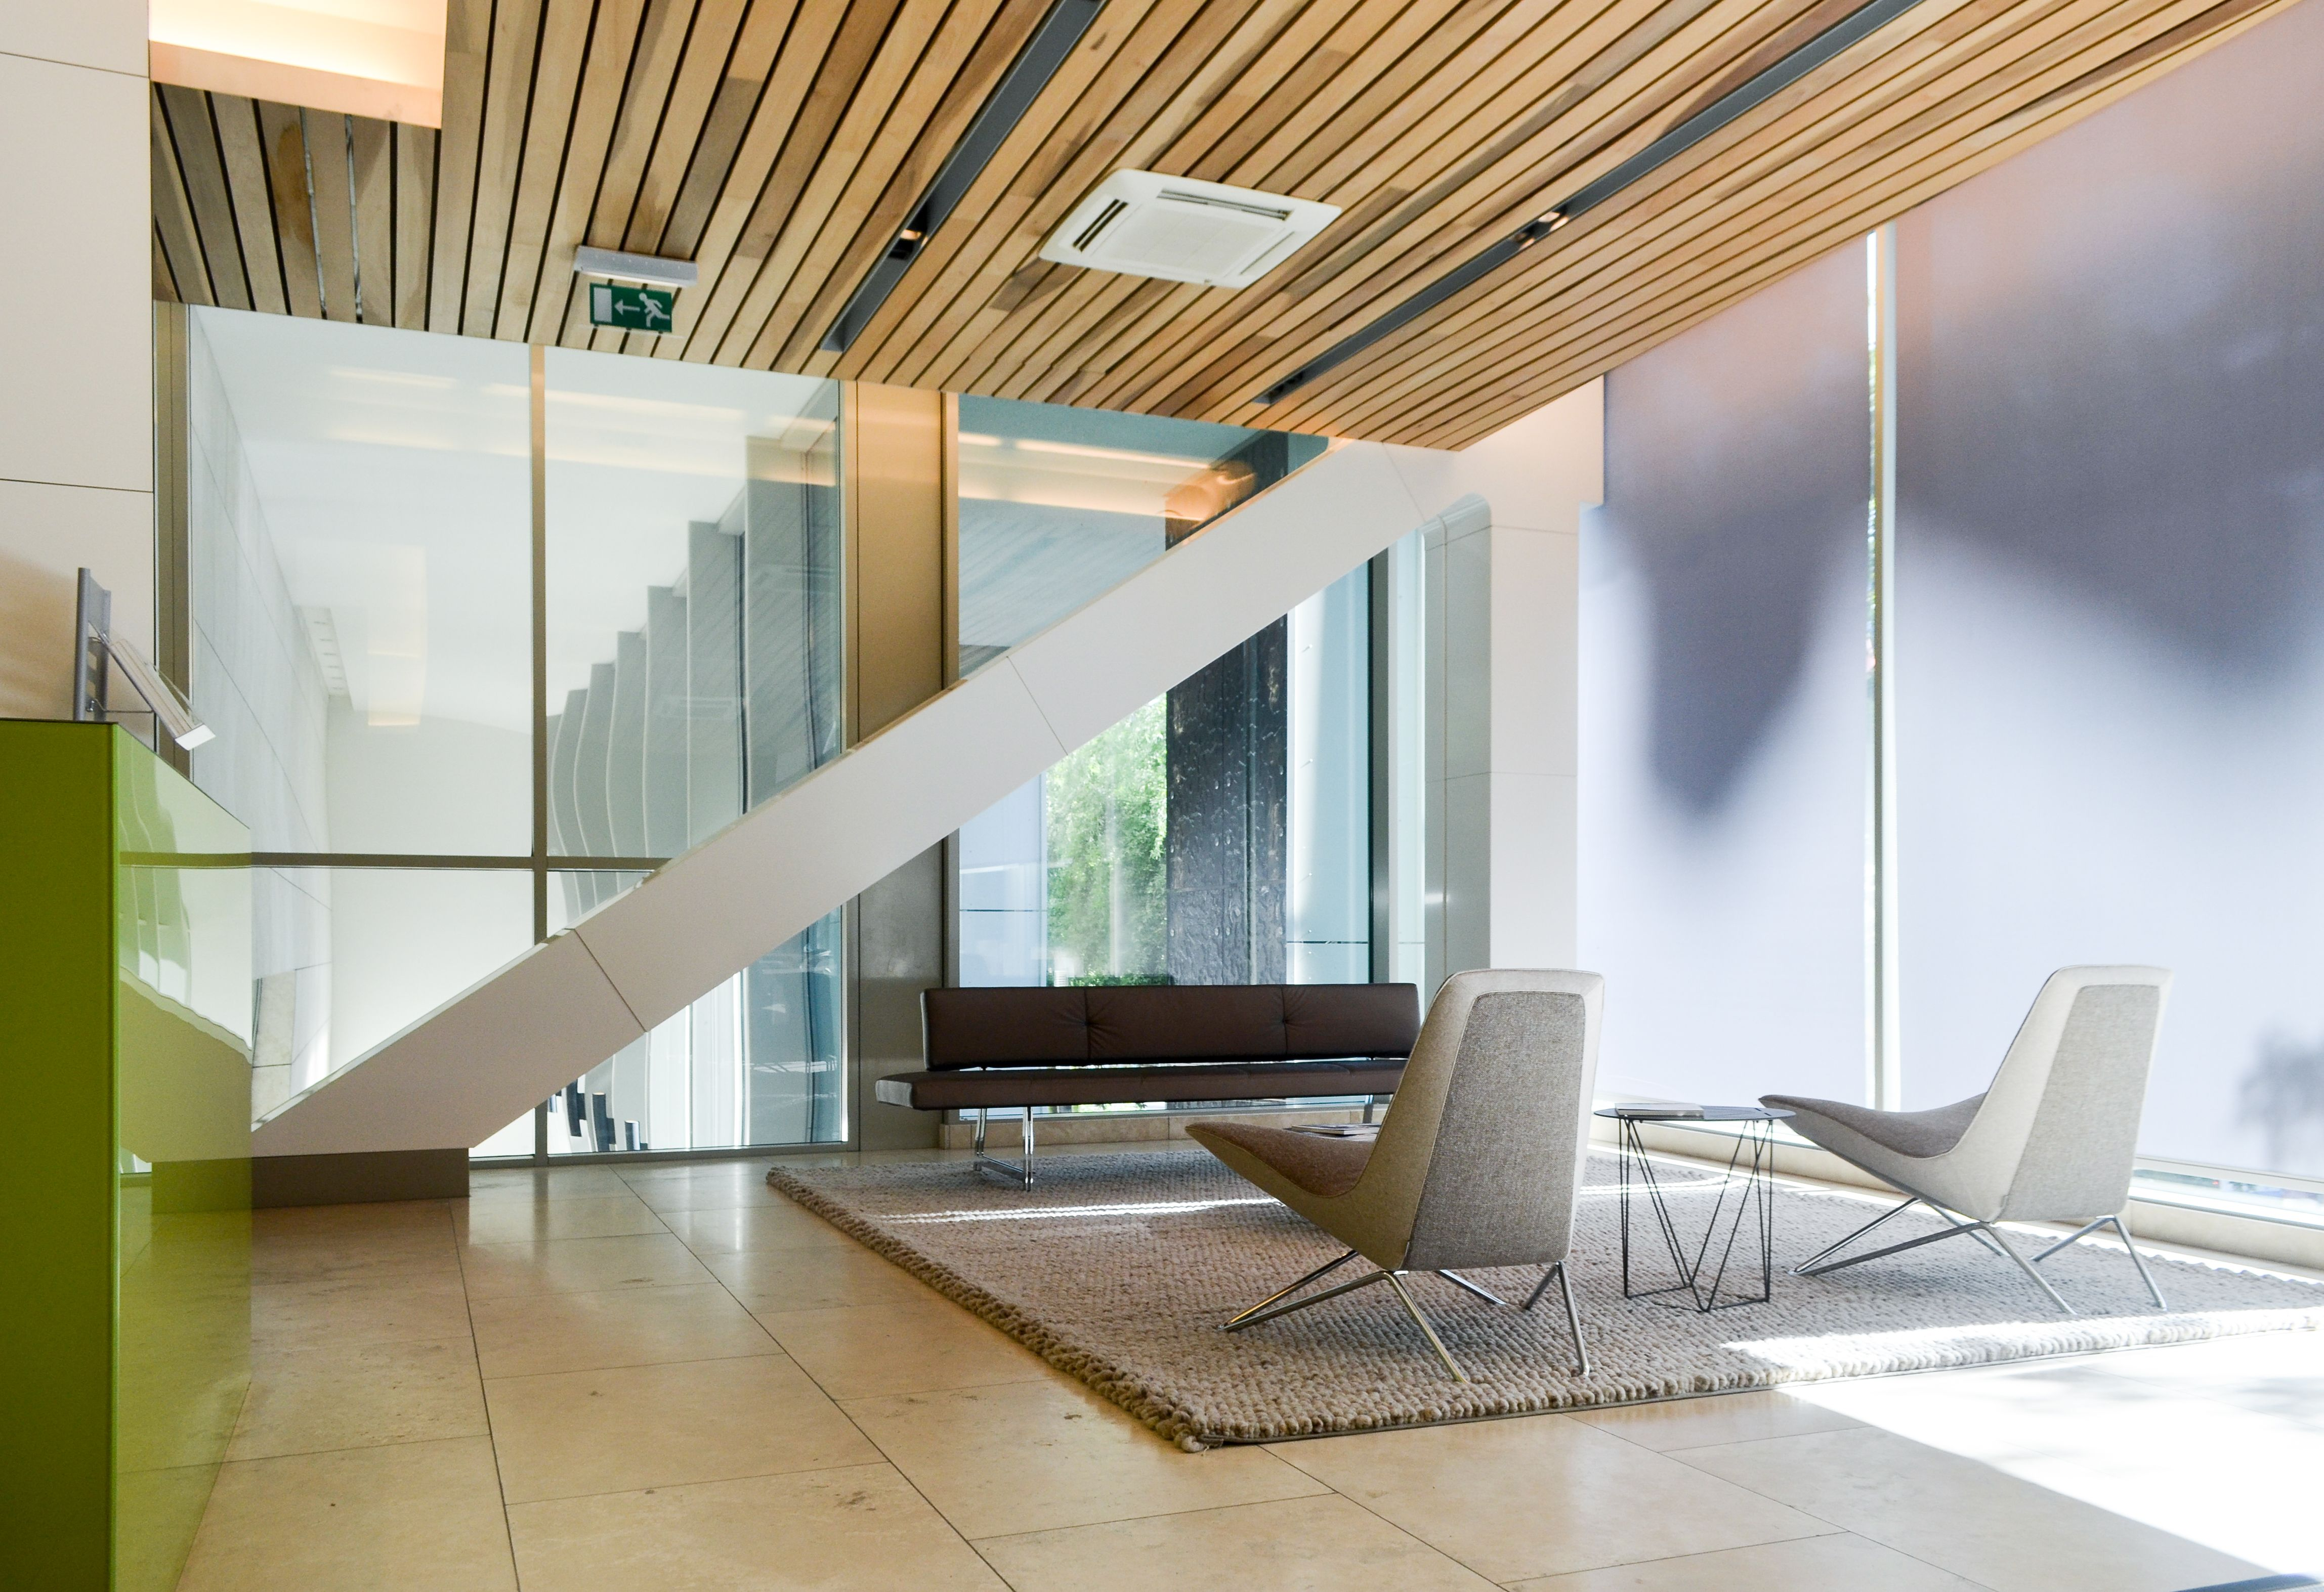 Office workspaces design interior and architecture ...